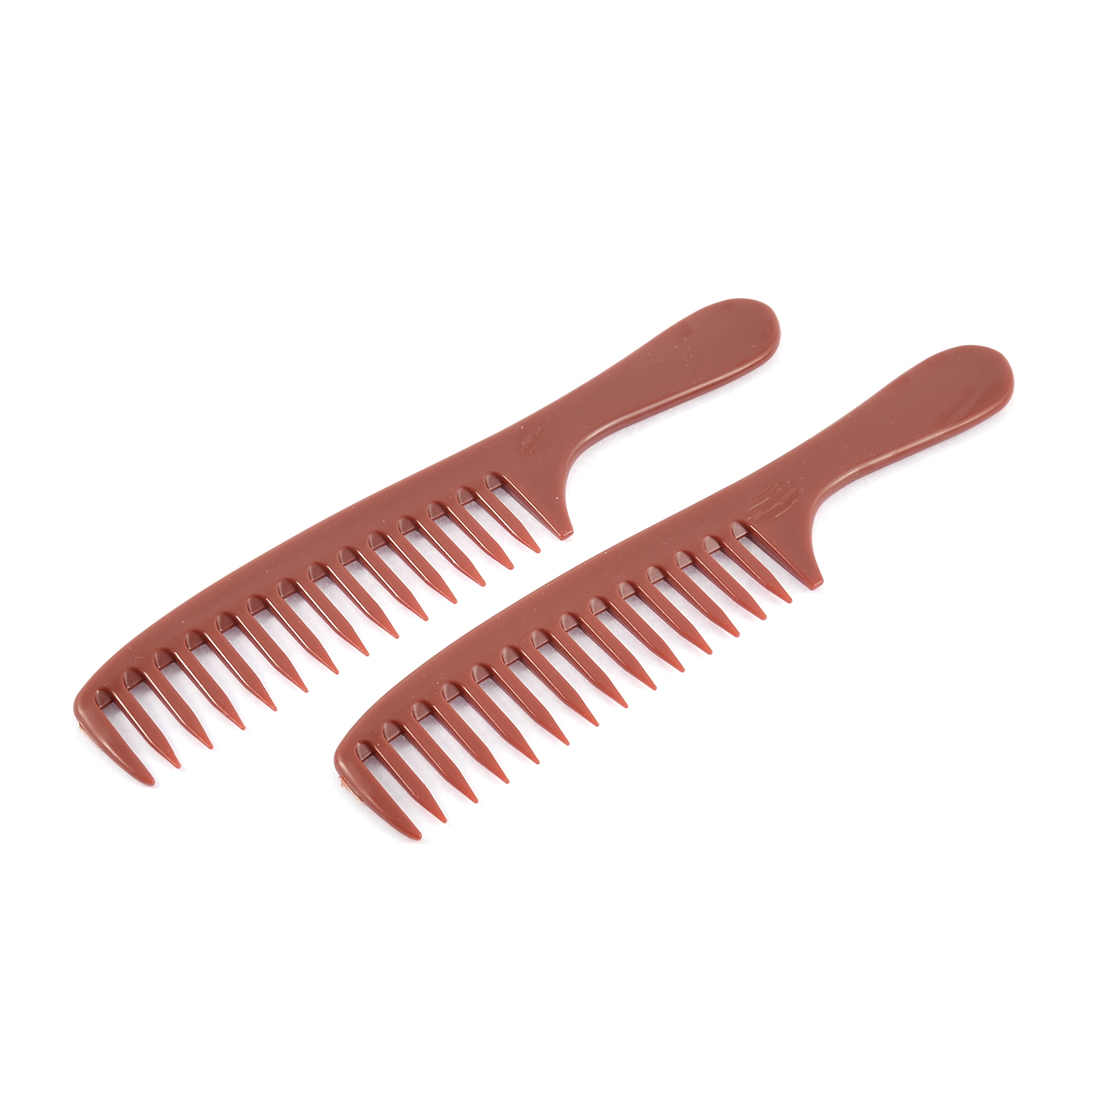 Plastic Hairdressing Anti-static Wode Teeth Hair Comb Beauty Tool 2pcs